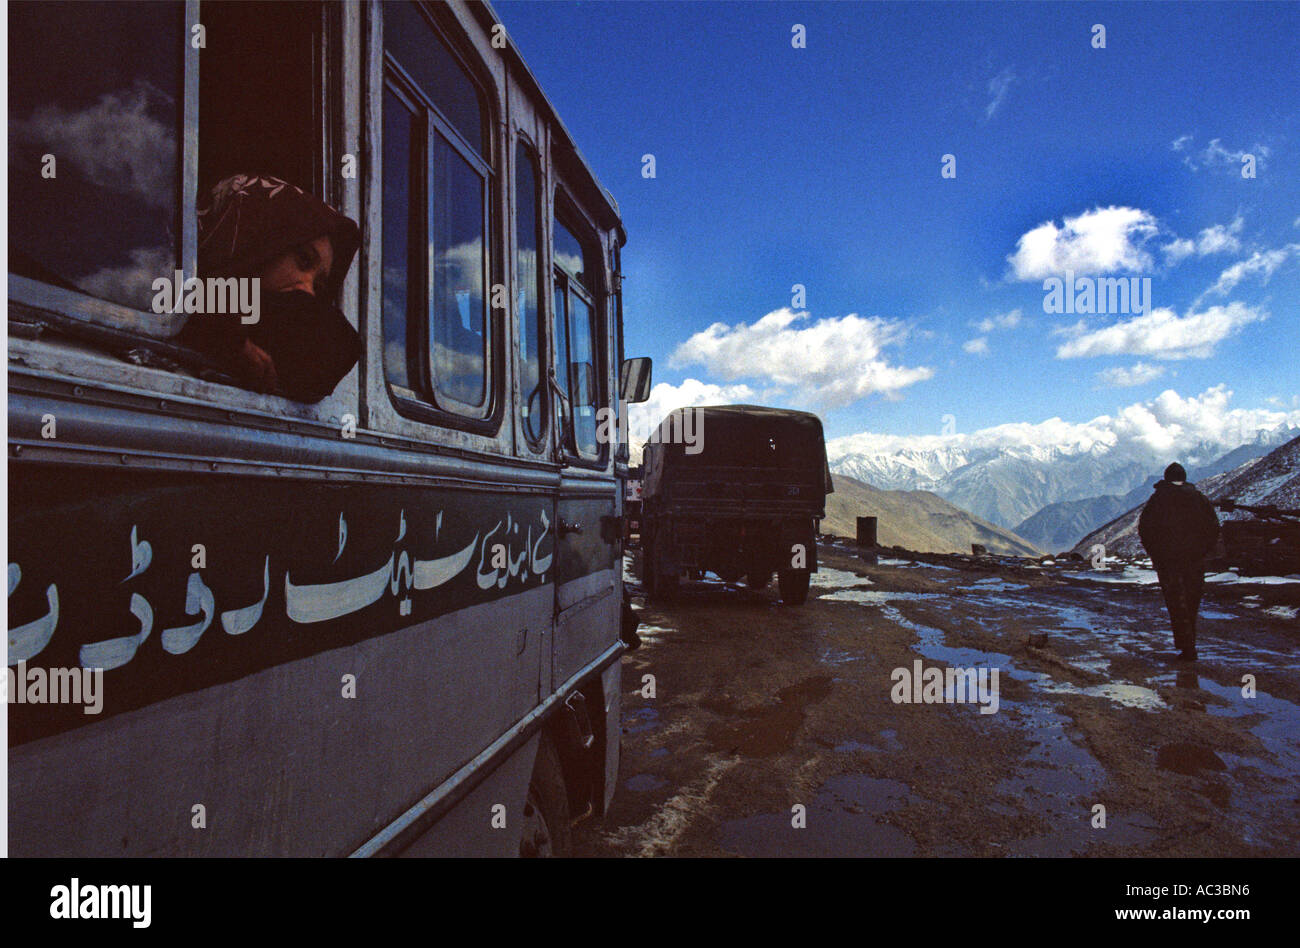 Girl on a bus on High mountain pass in the Indian Himalayas - Stock Image